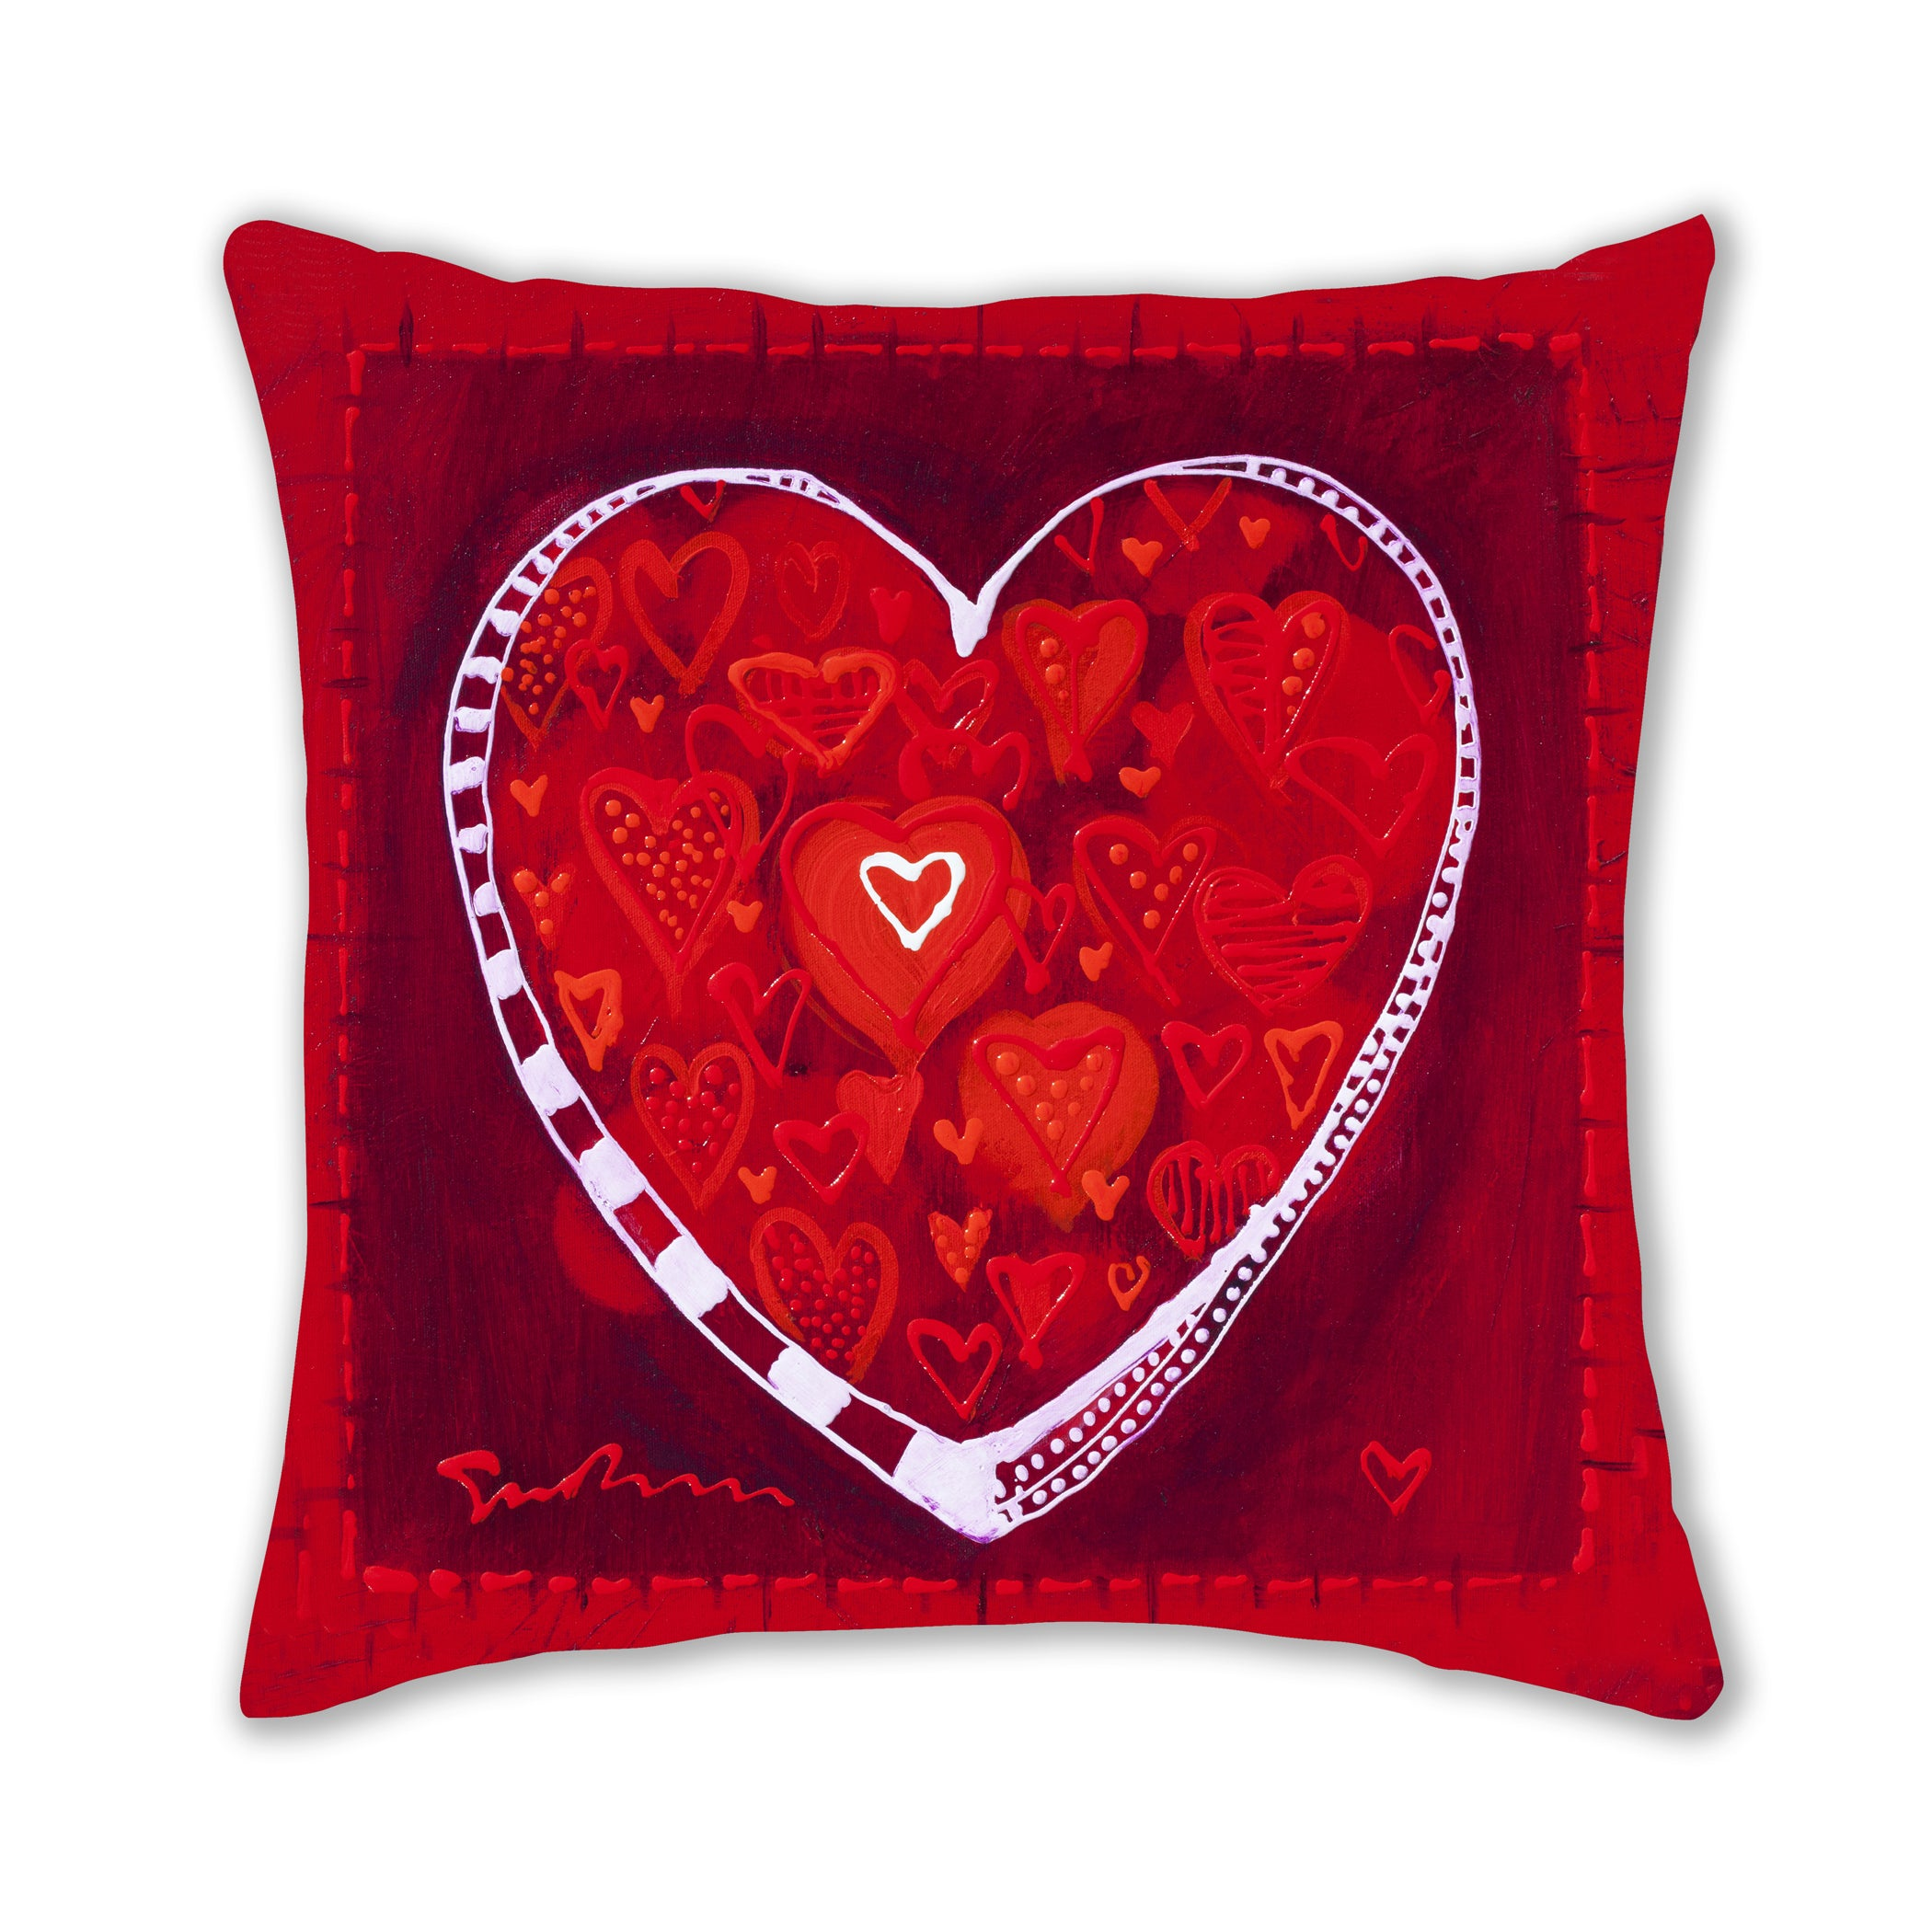 Hearts of Love Pillow